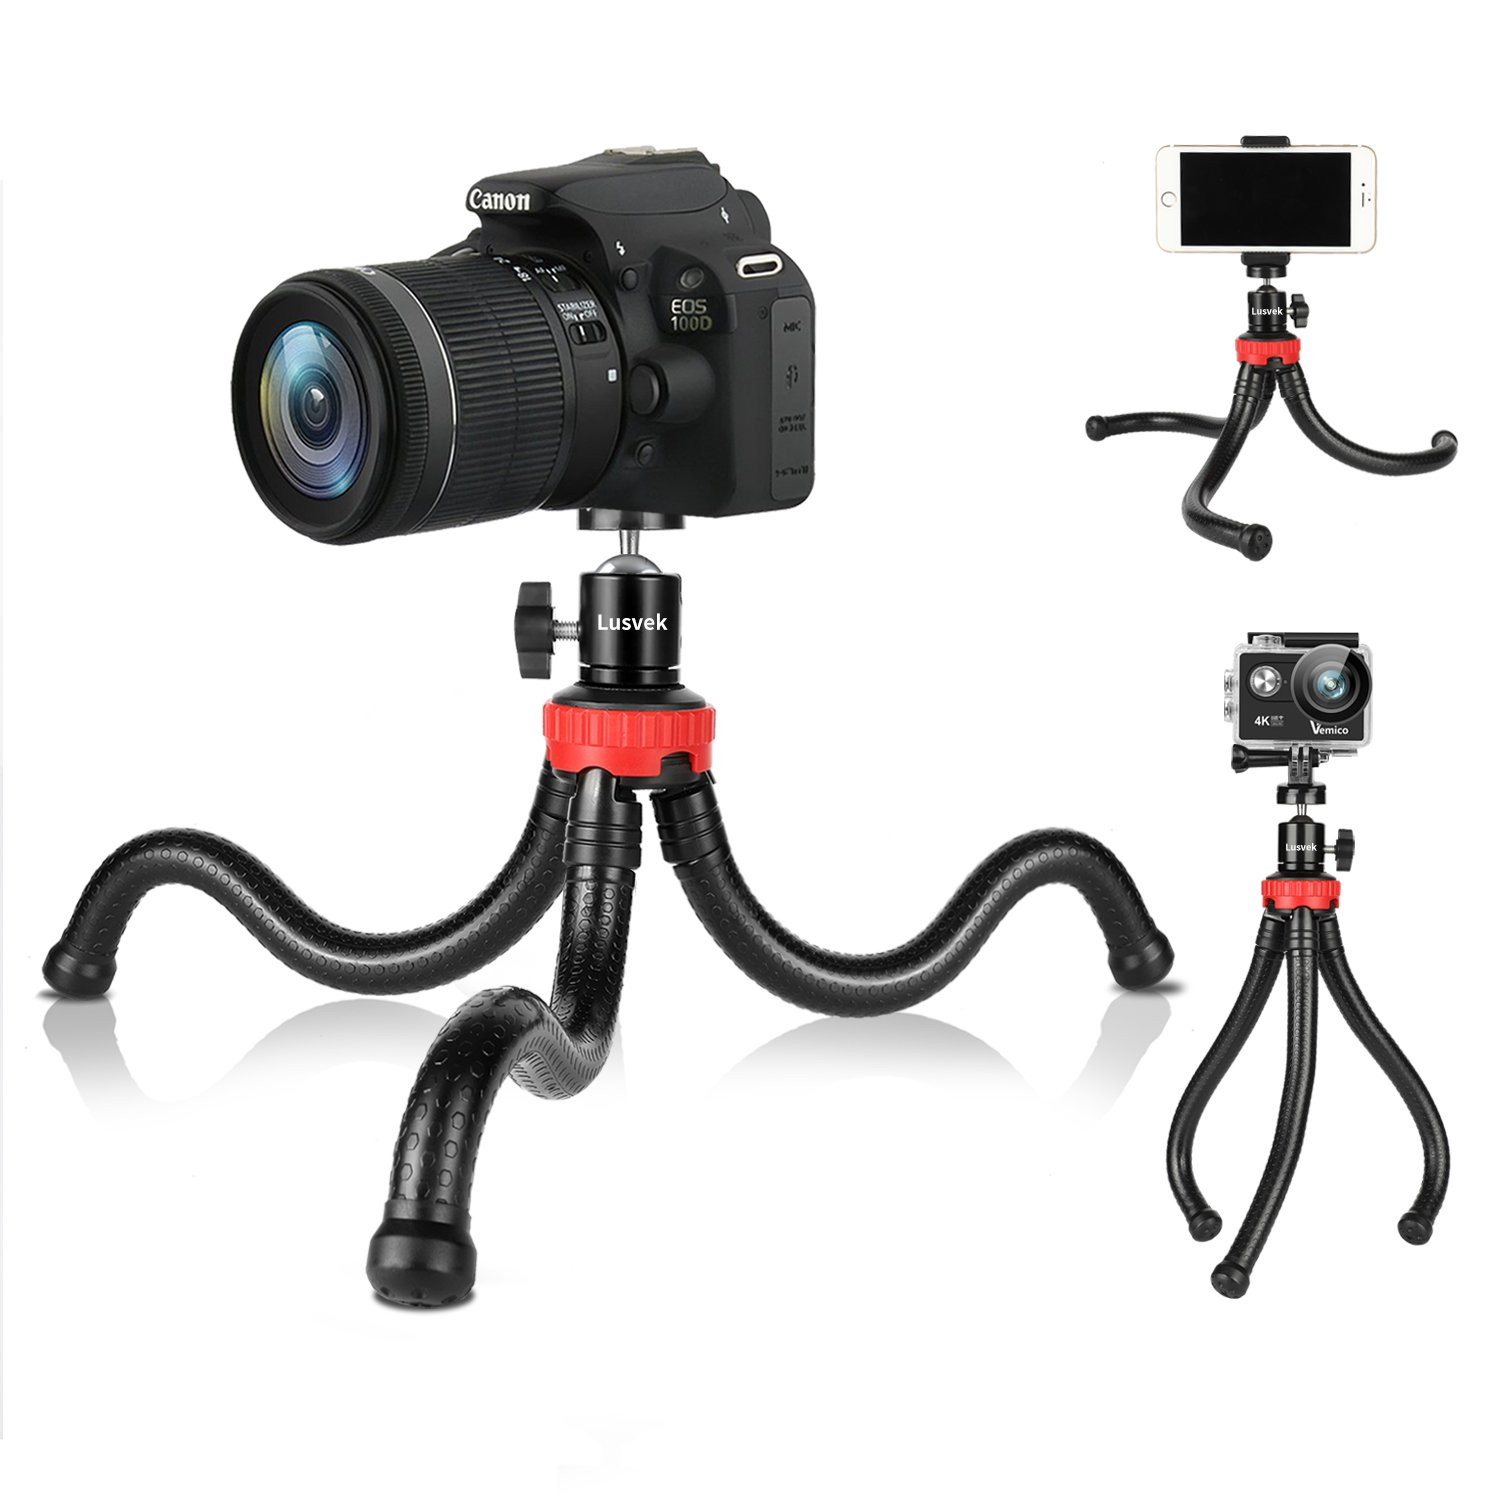 Phone Tripod,LUSVEK Flexible and Adjustable Camera Tripod with Universal Clip for iPhone, Android Phone, Camera and Gopro